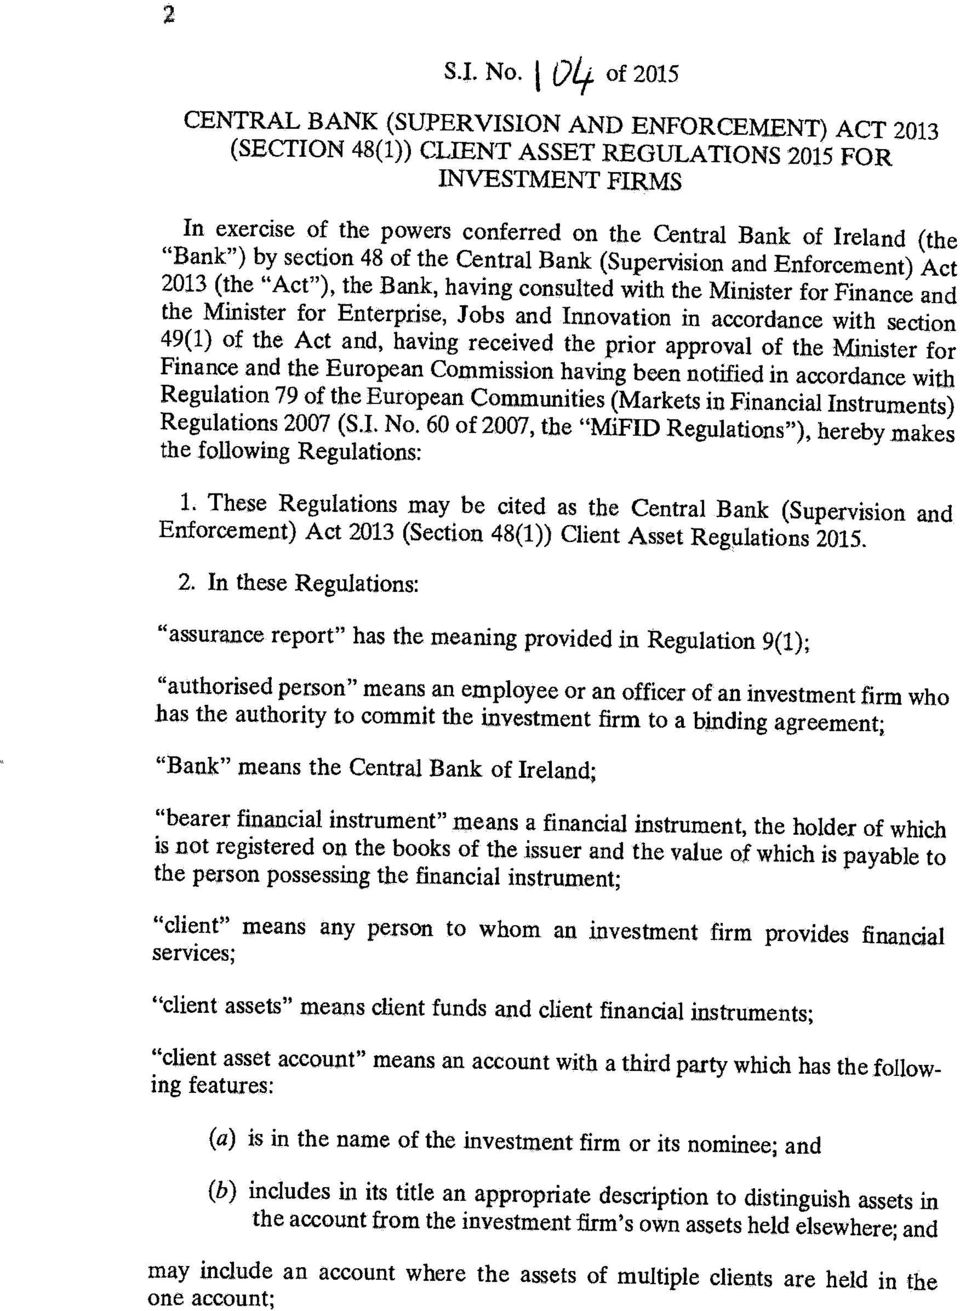 "(the ""Bank"") by section 48 of the Central Bank (Supervision and Enforcement) Act 2013 (the ""Act""), the Bank, having consulted with the Minister for Finance and the Minister for Enterprise, Jobs and"